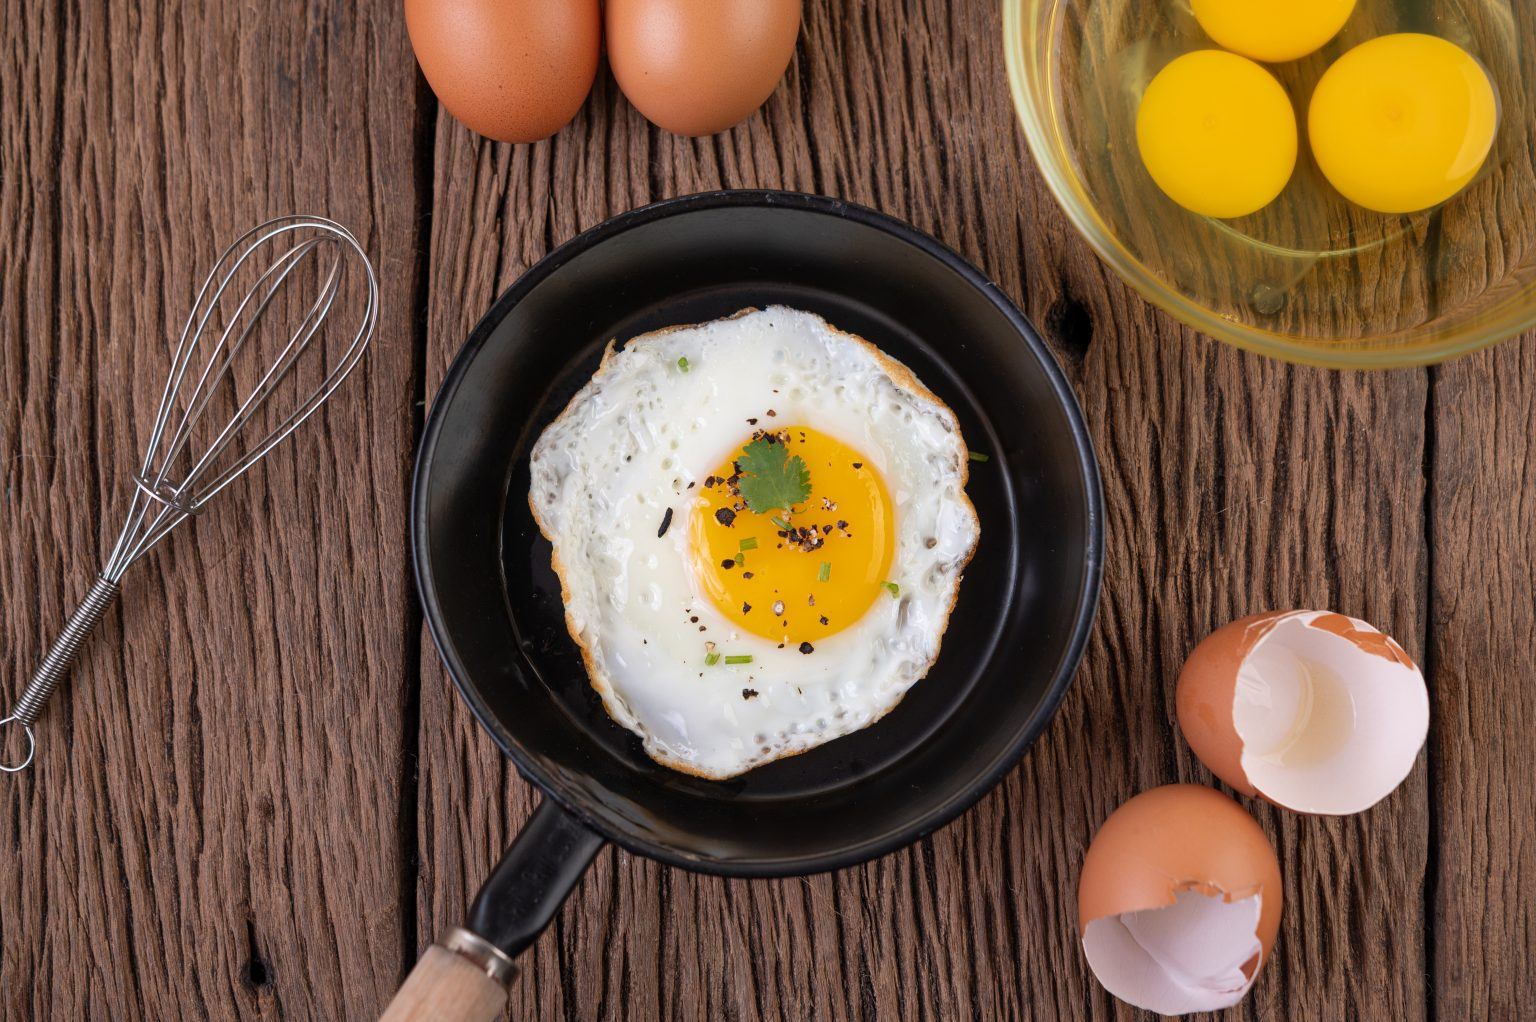 Eggs as they are rich in protein and can help hair growth and repair.